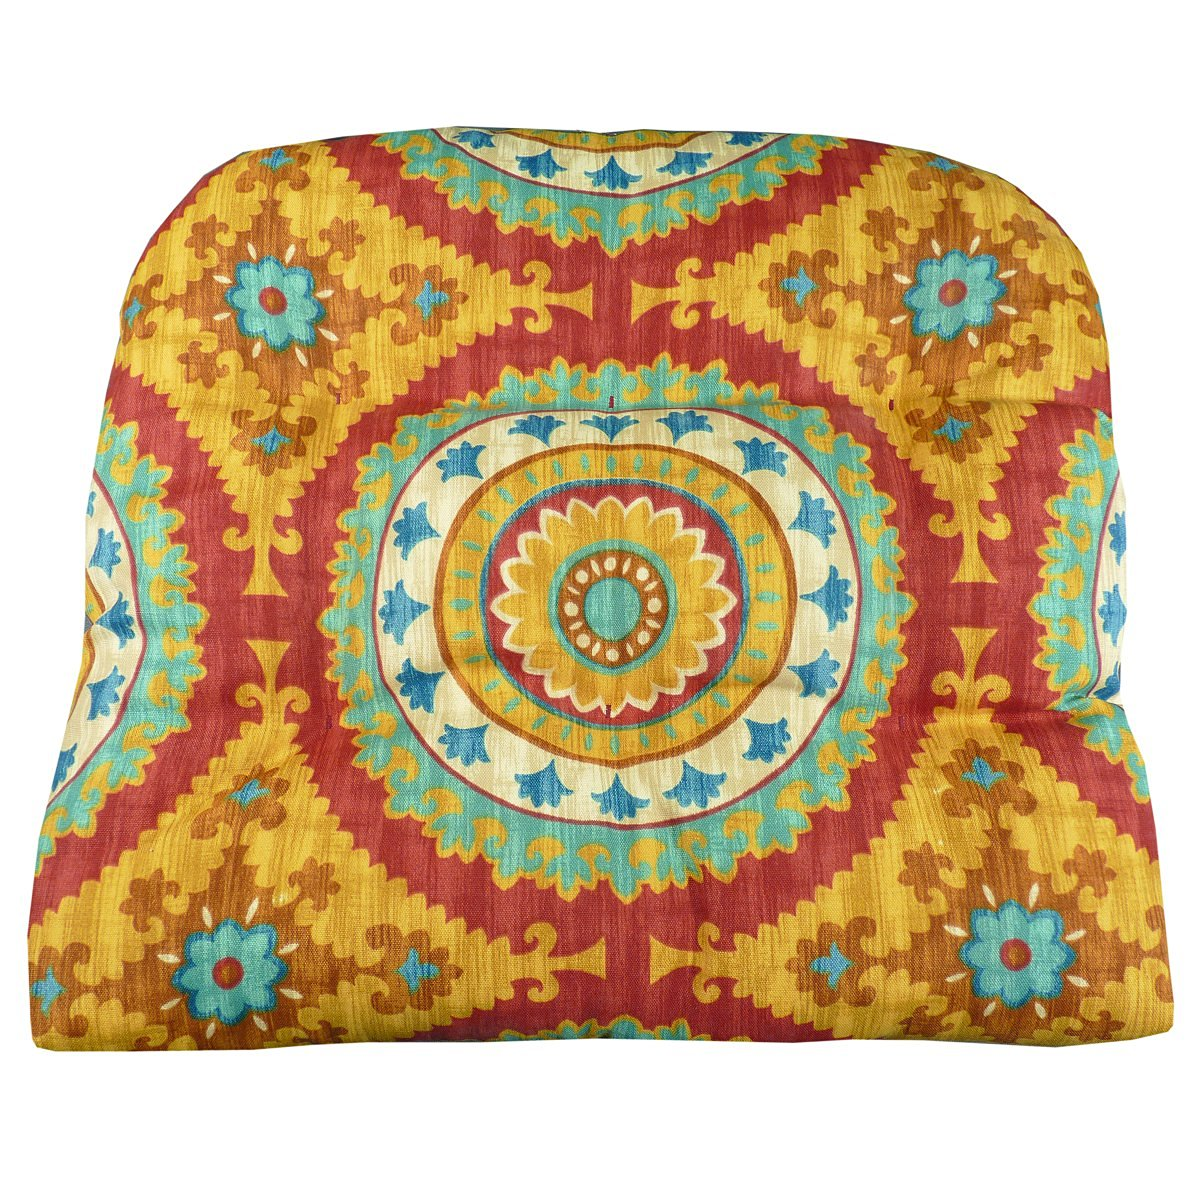 Patio Chair Cushion - Inessa Suzani Mandalas: Red, Gold Teal - Size Large - Indoor / Outdoor, Mildew Resistant, Fade Resistant - Reversible, Latex Foam Fill, Tufted Seat Cushion, Box Edge Chair Pad - Outdoor Furniture Replacement Cushion for Patio Armchair - Wicker Chair, Adirondack Chair